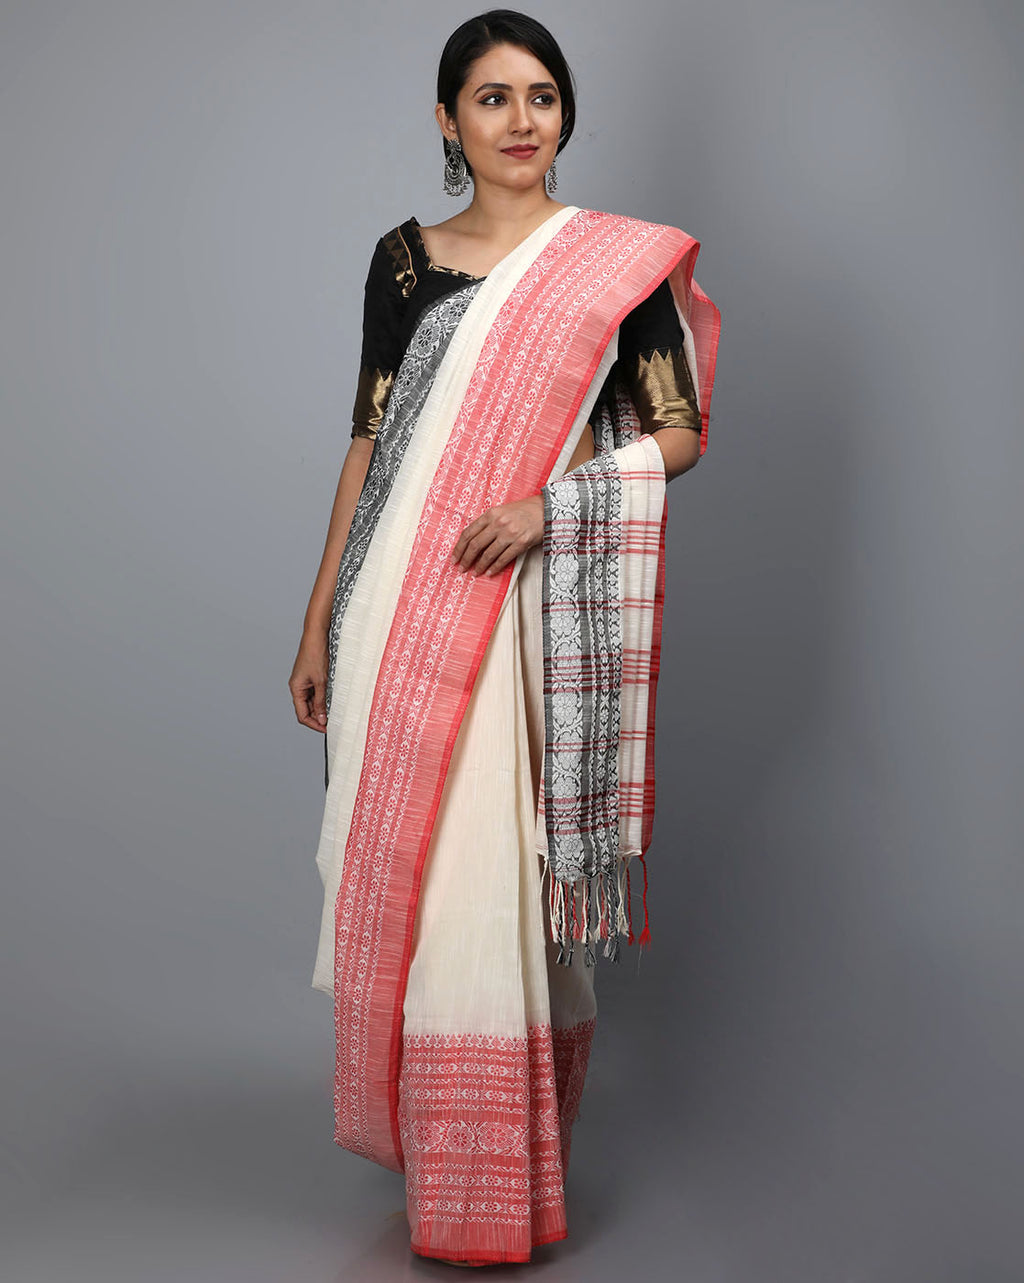 Phulia Cotton Saree with Thick and Thin Floral Border - Offwhite/Red & Black